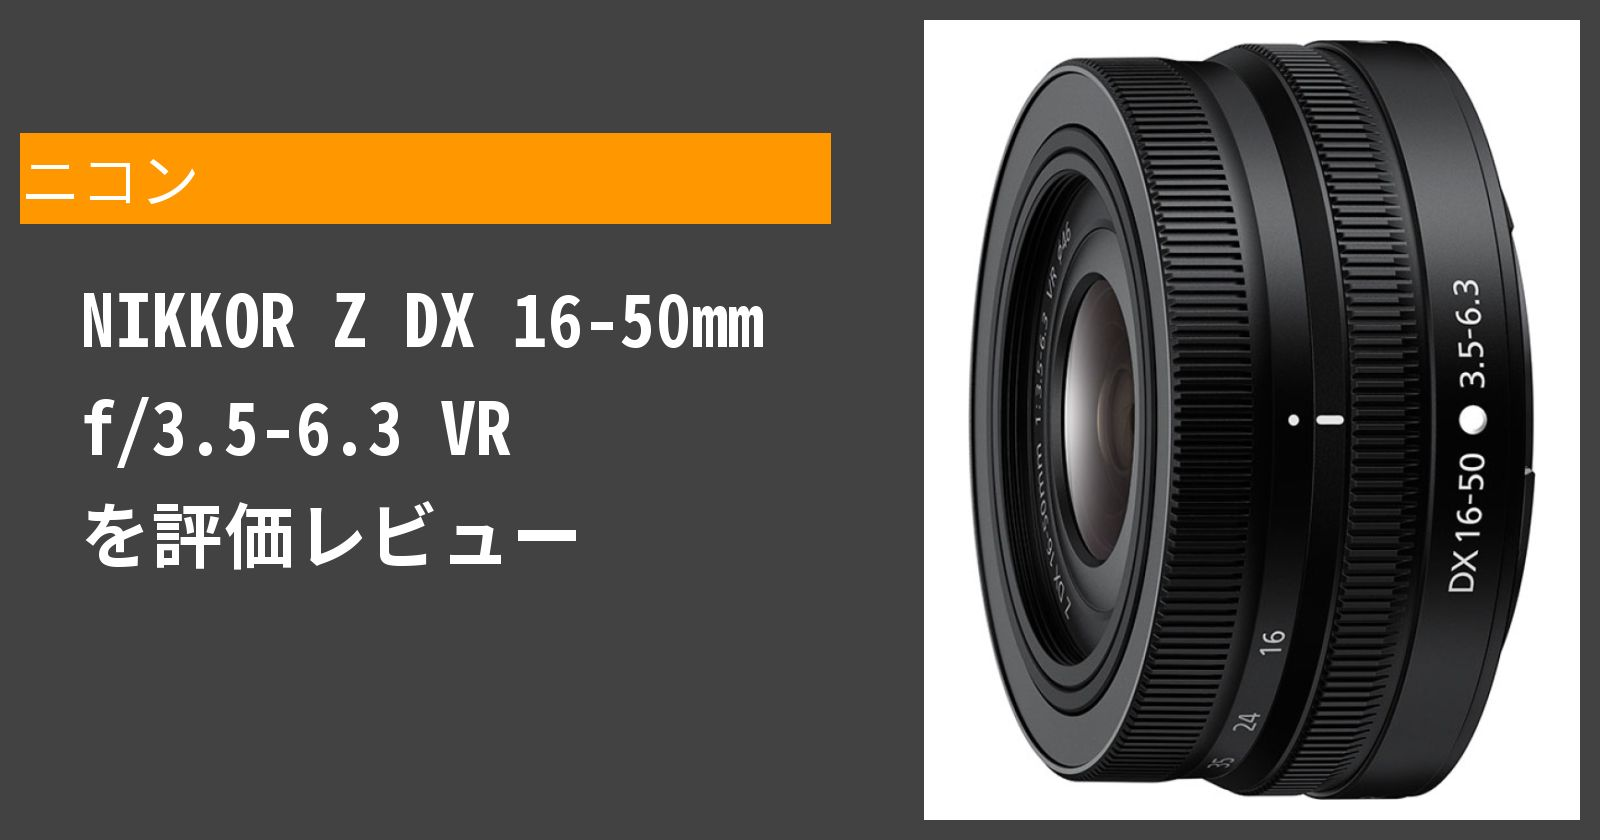 NIKKOR Z DX 16-50mm f/3.5-6.3 VRを徹底評価